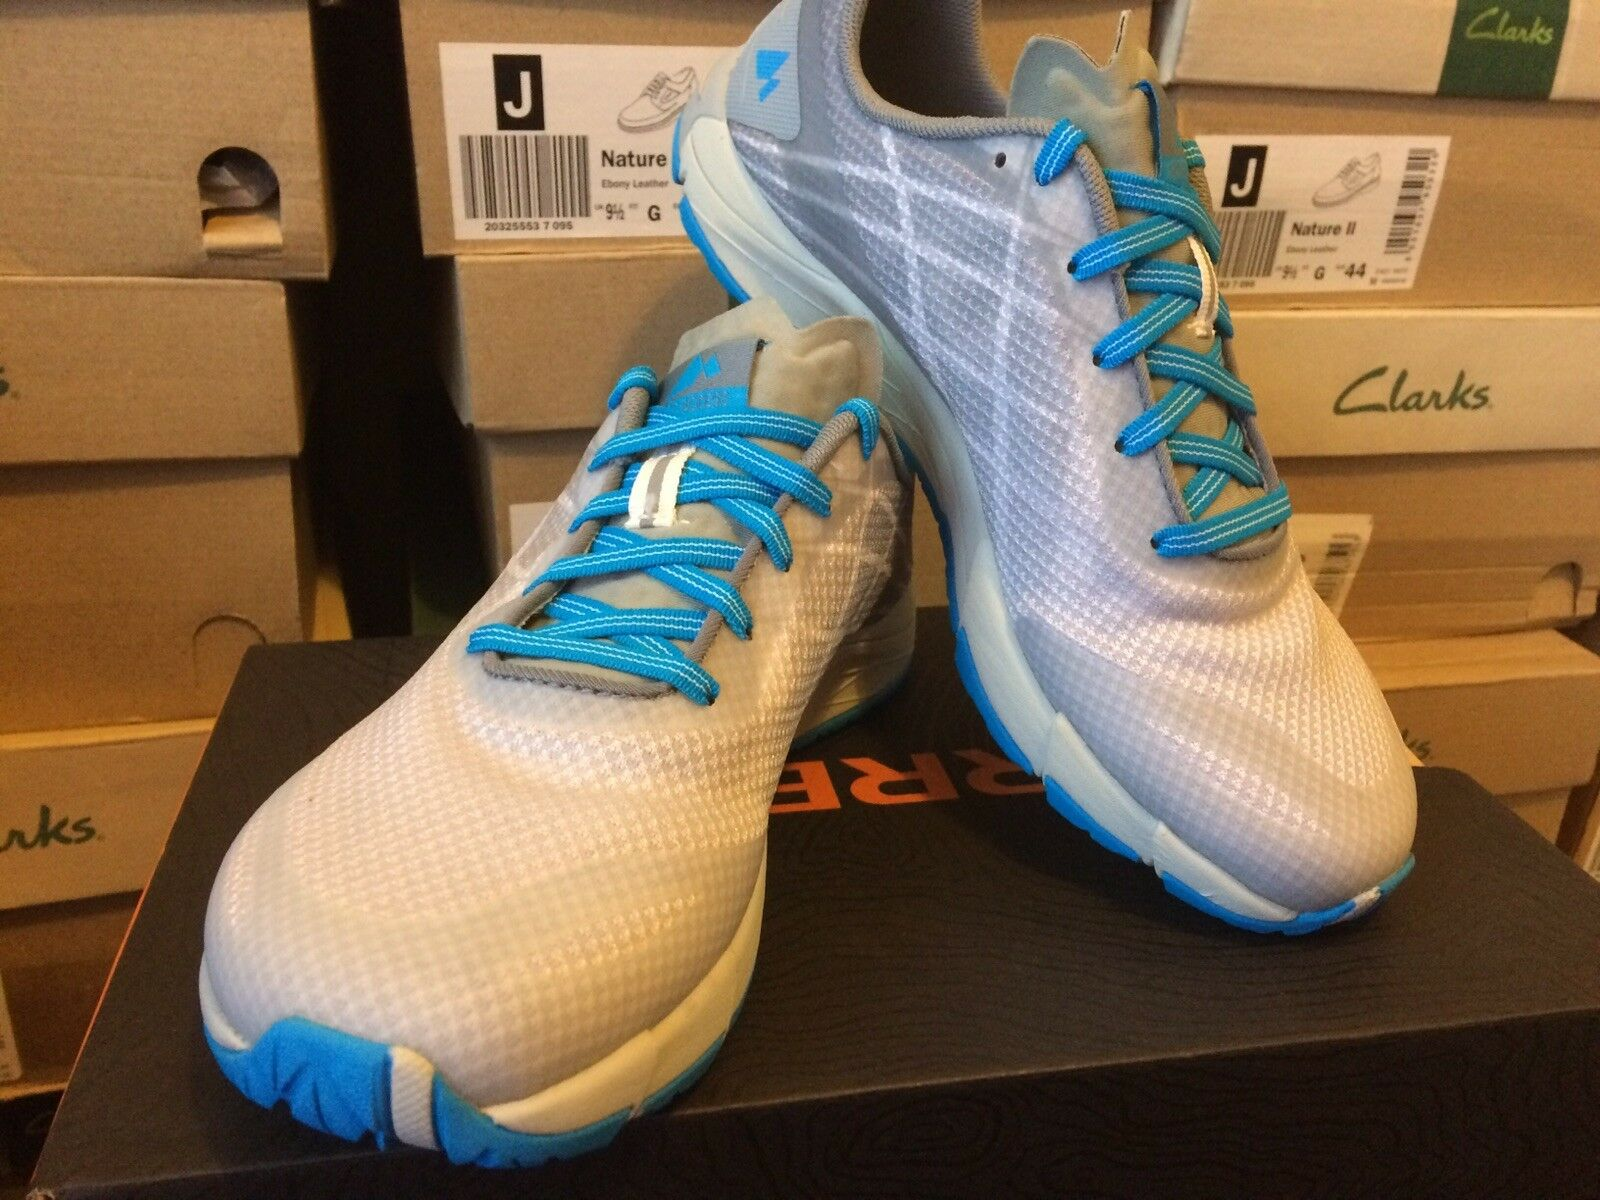 Merrell Bare Access Flex Femme Blanc (Ice) Chaussures De Course Taille UK 3,5. RRP £ 80.